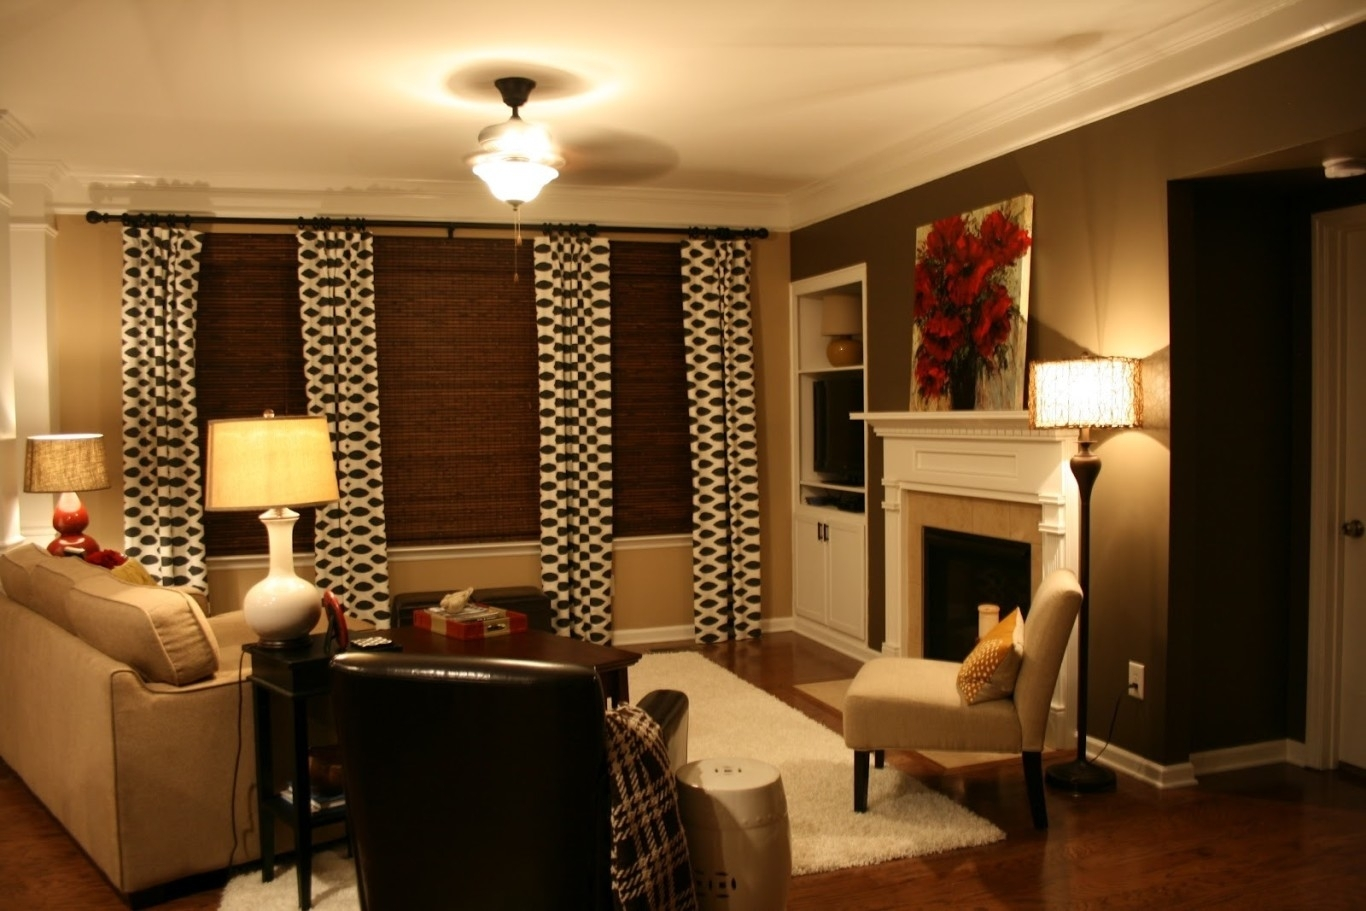 Wall Accents For Living Room Intended For Current Wall Accents For Media Room (View 13 of 15)